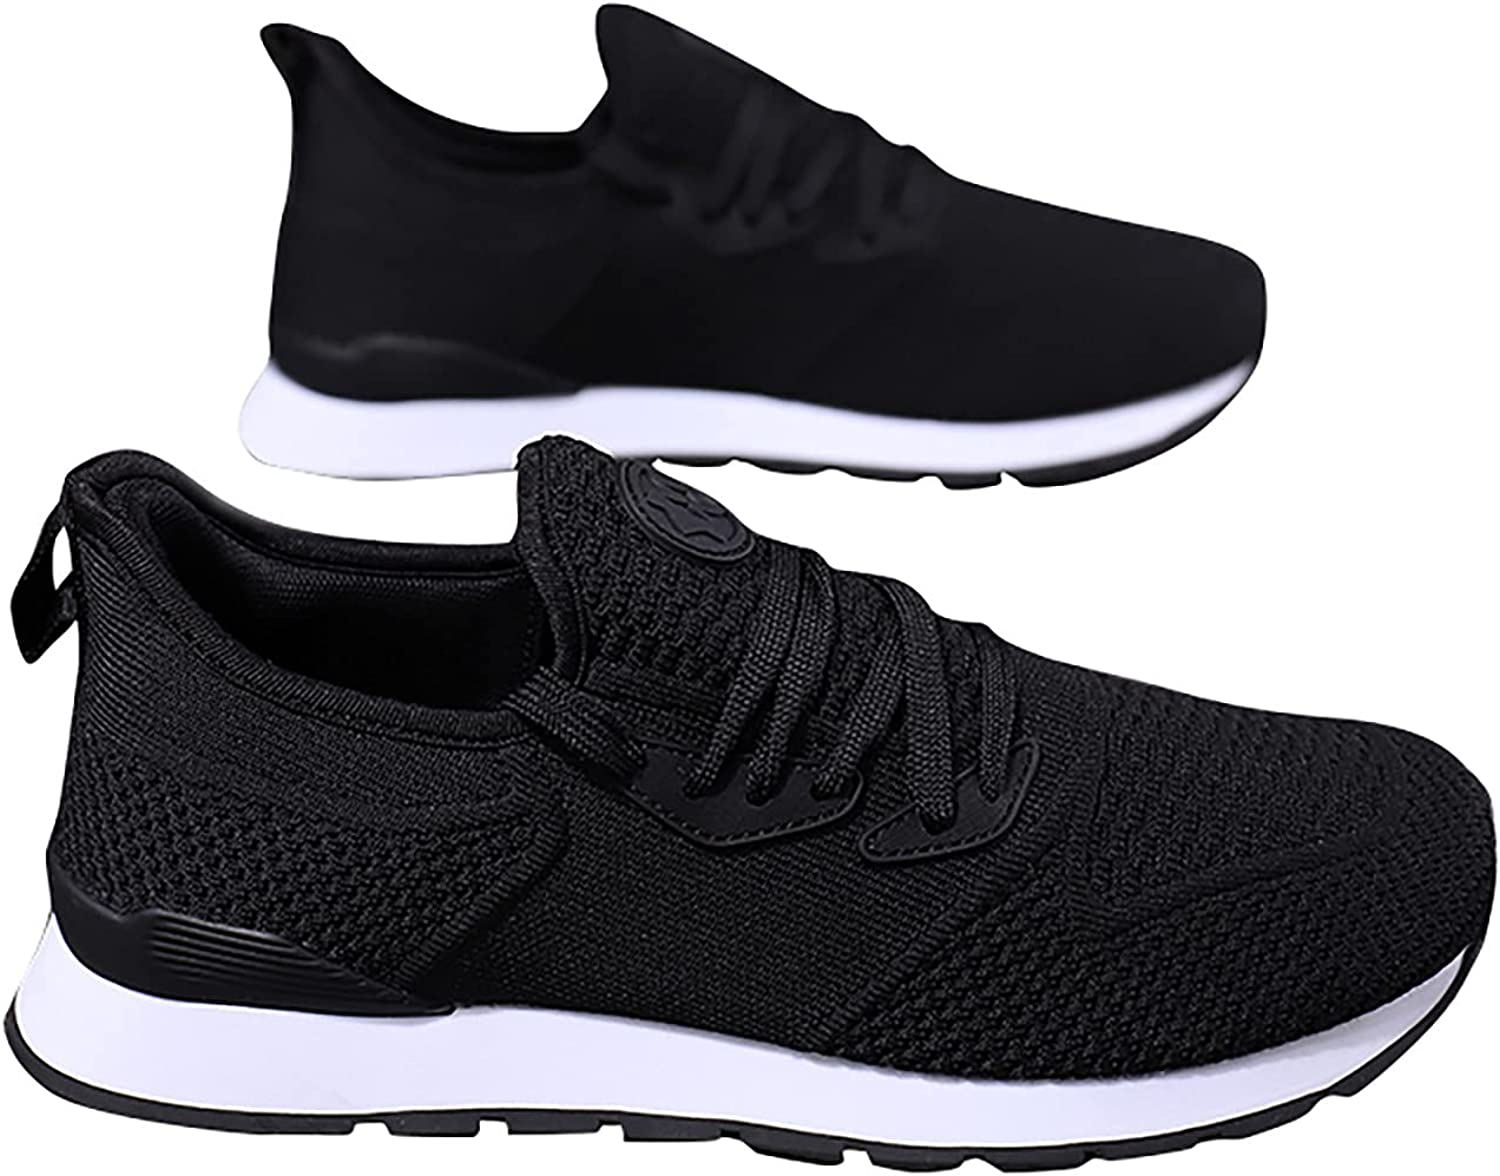 Adeliber New Women Sexy Shoes Fashion Outdoor No-Slip Mesh Comfortable Walking Shoes Fly Woven Breathable Running Sports Shoes Lace Up Casual Shoes Lightweight Sneakers All-Match Work Shoes for Women